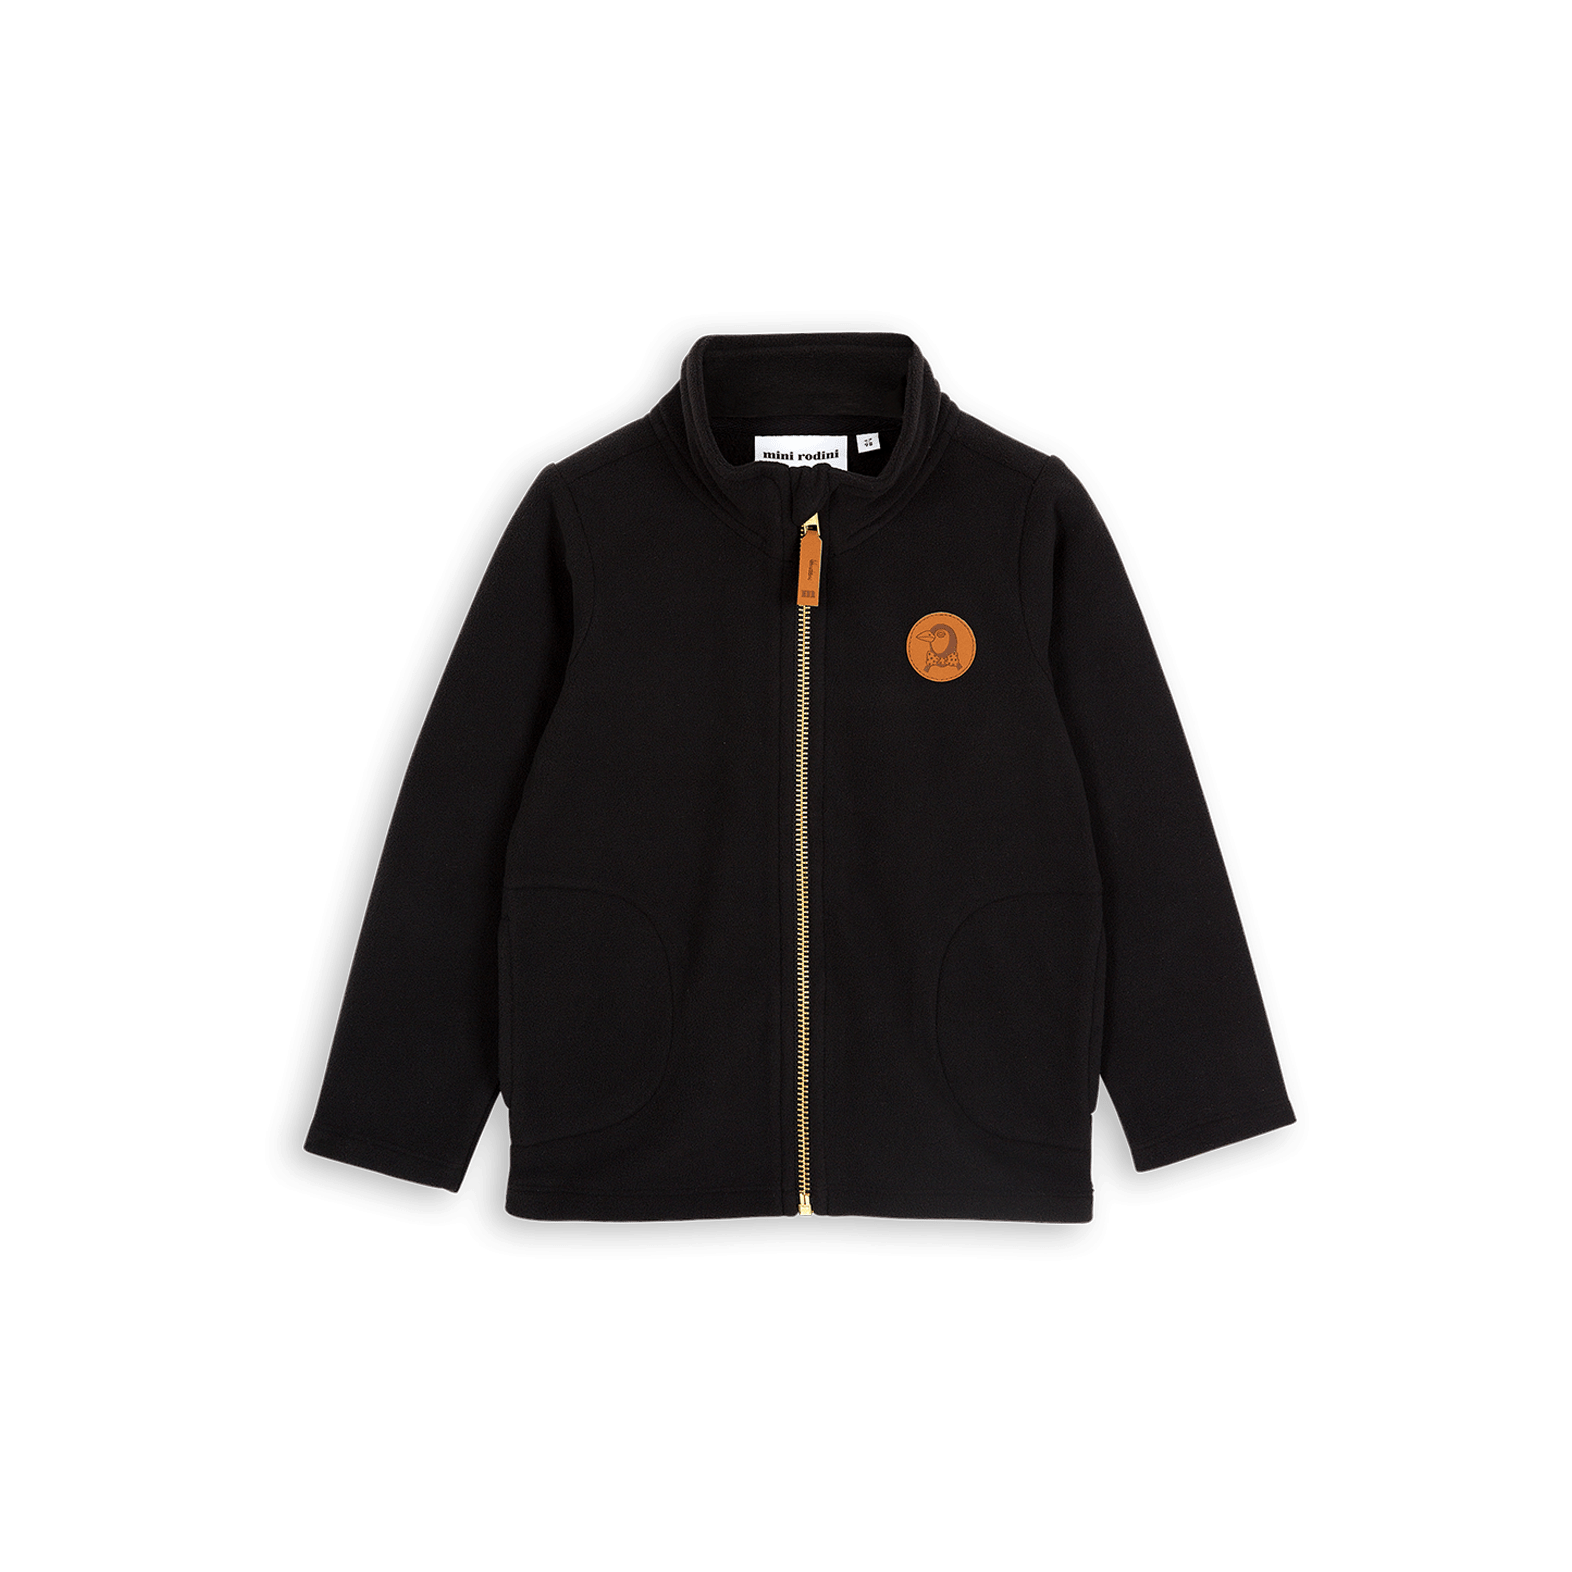 Fleece Jacket Mini Rodini